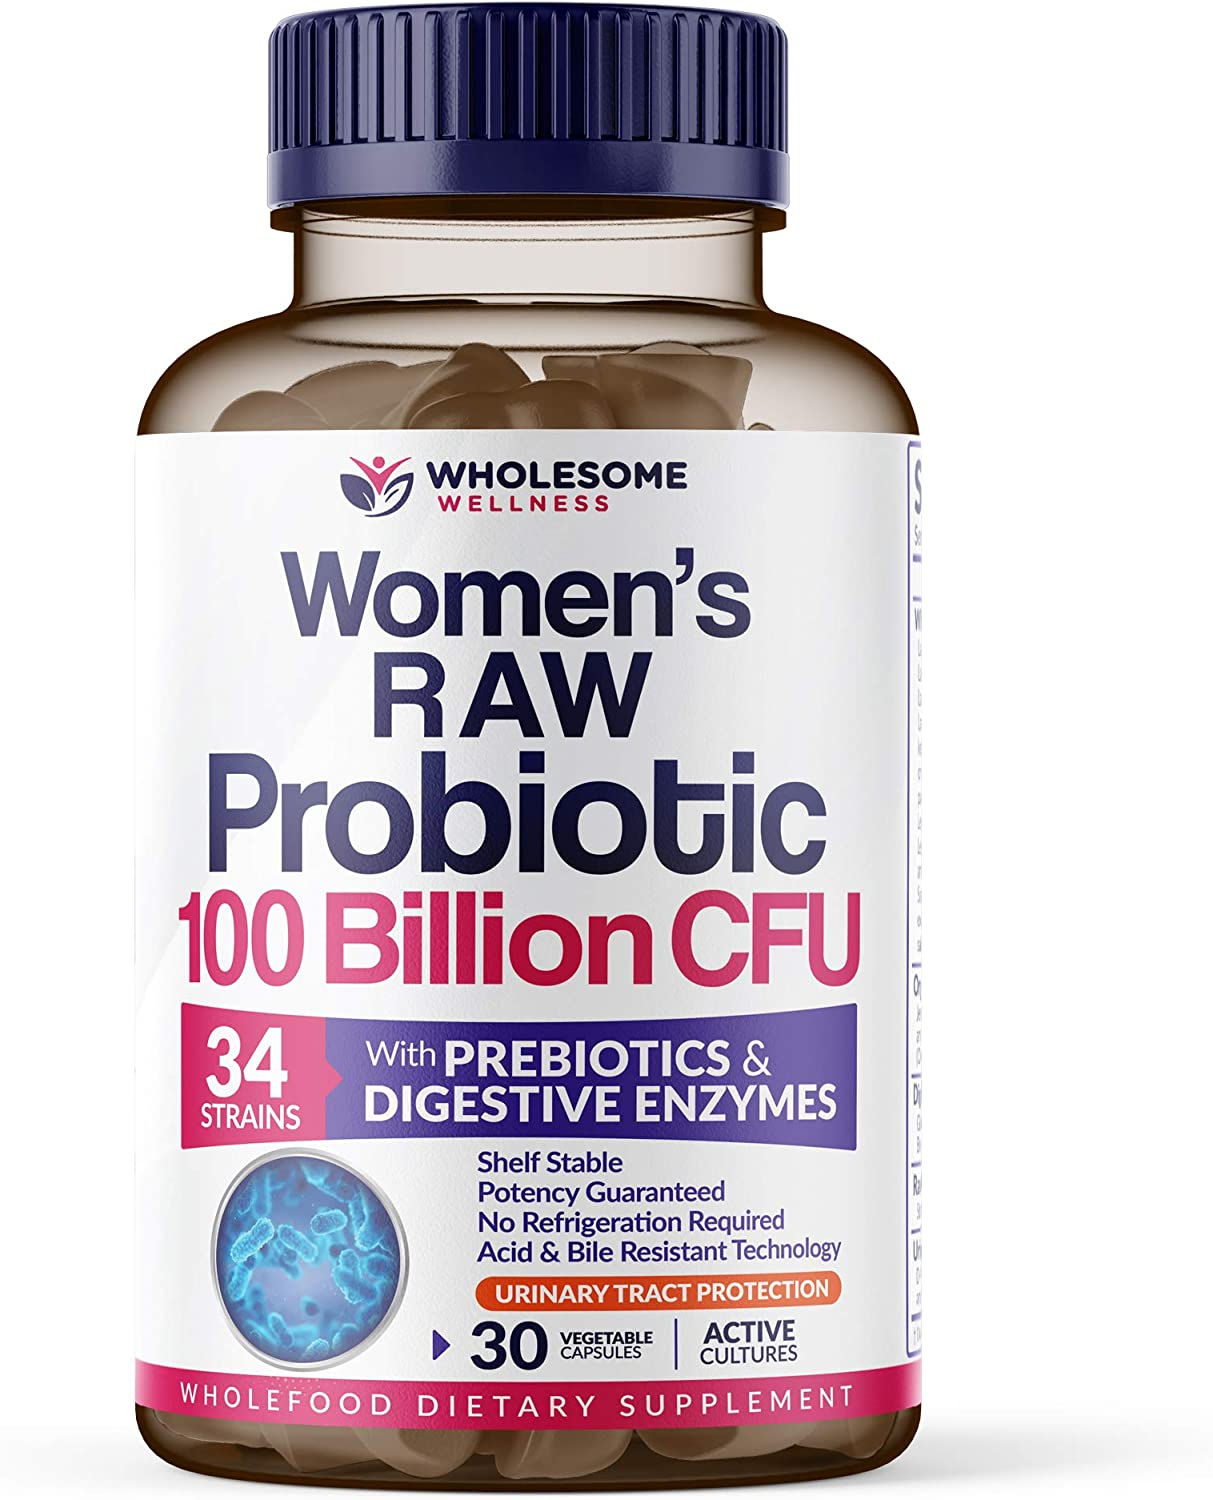 Amazon.com: Dr. Formulated Raw Probiotics for Women 100 Billion CFUs with  Prebiotics, Digestive Enzymes, & UT Support, Dr. Approved Women's Probiotic  for Adults, Shelf Stable Probiotic Supplement, 30 Capsules: Health &  Personal